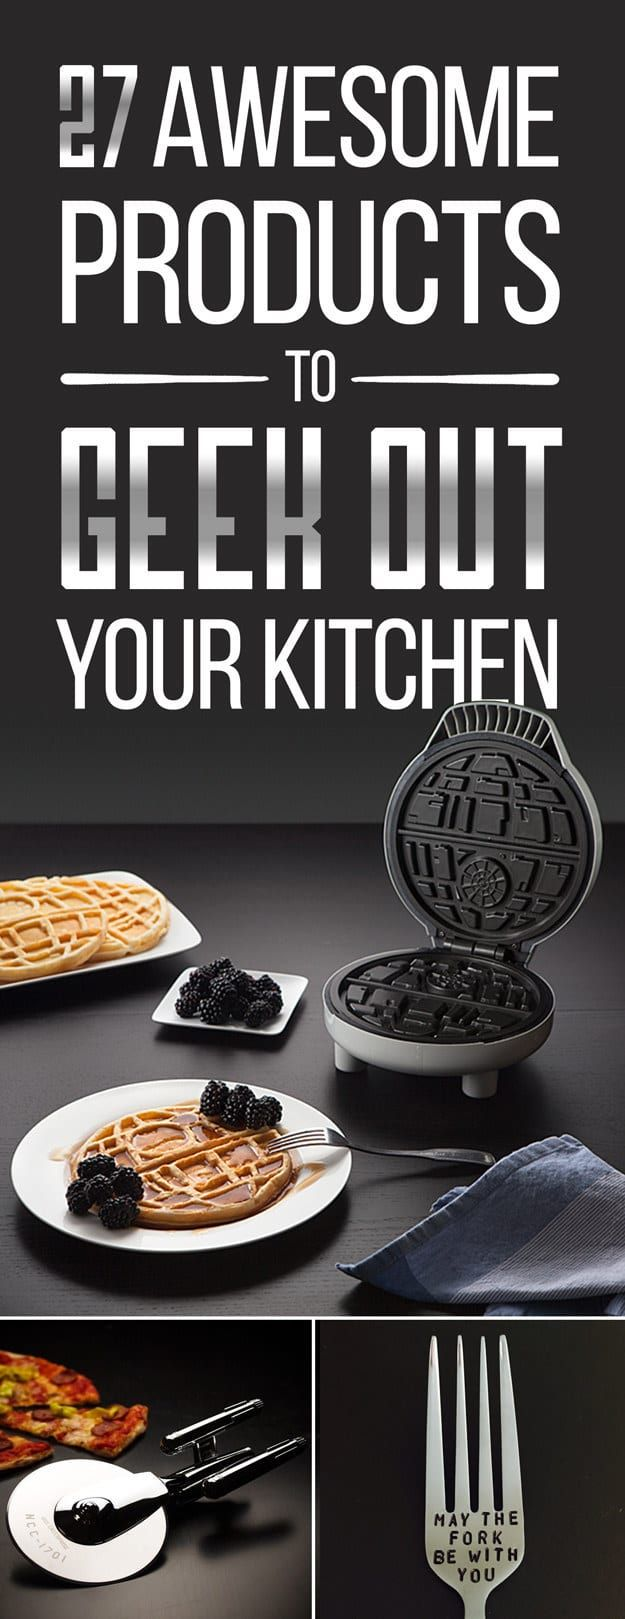 27 Wonderfully Geeky Products You Never Knew Your Kitchen Needed